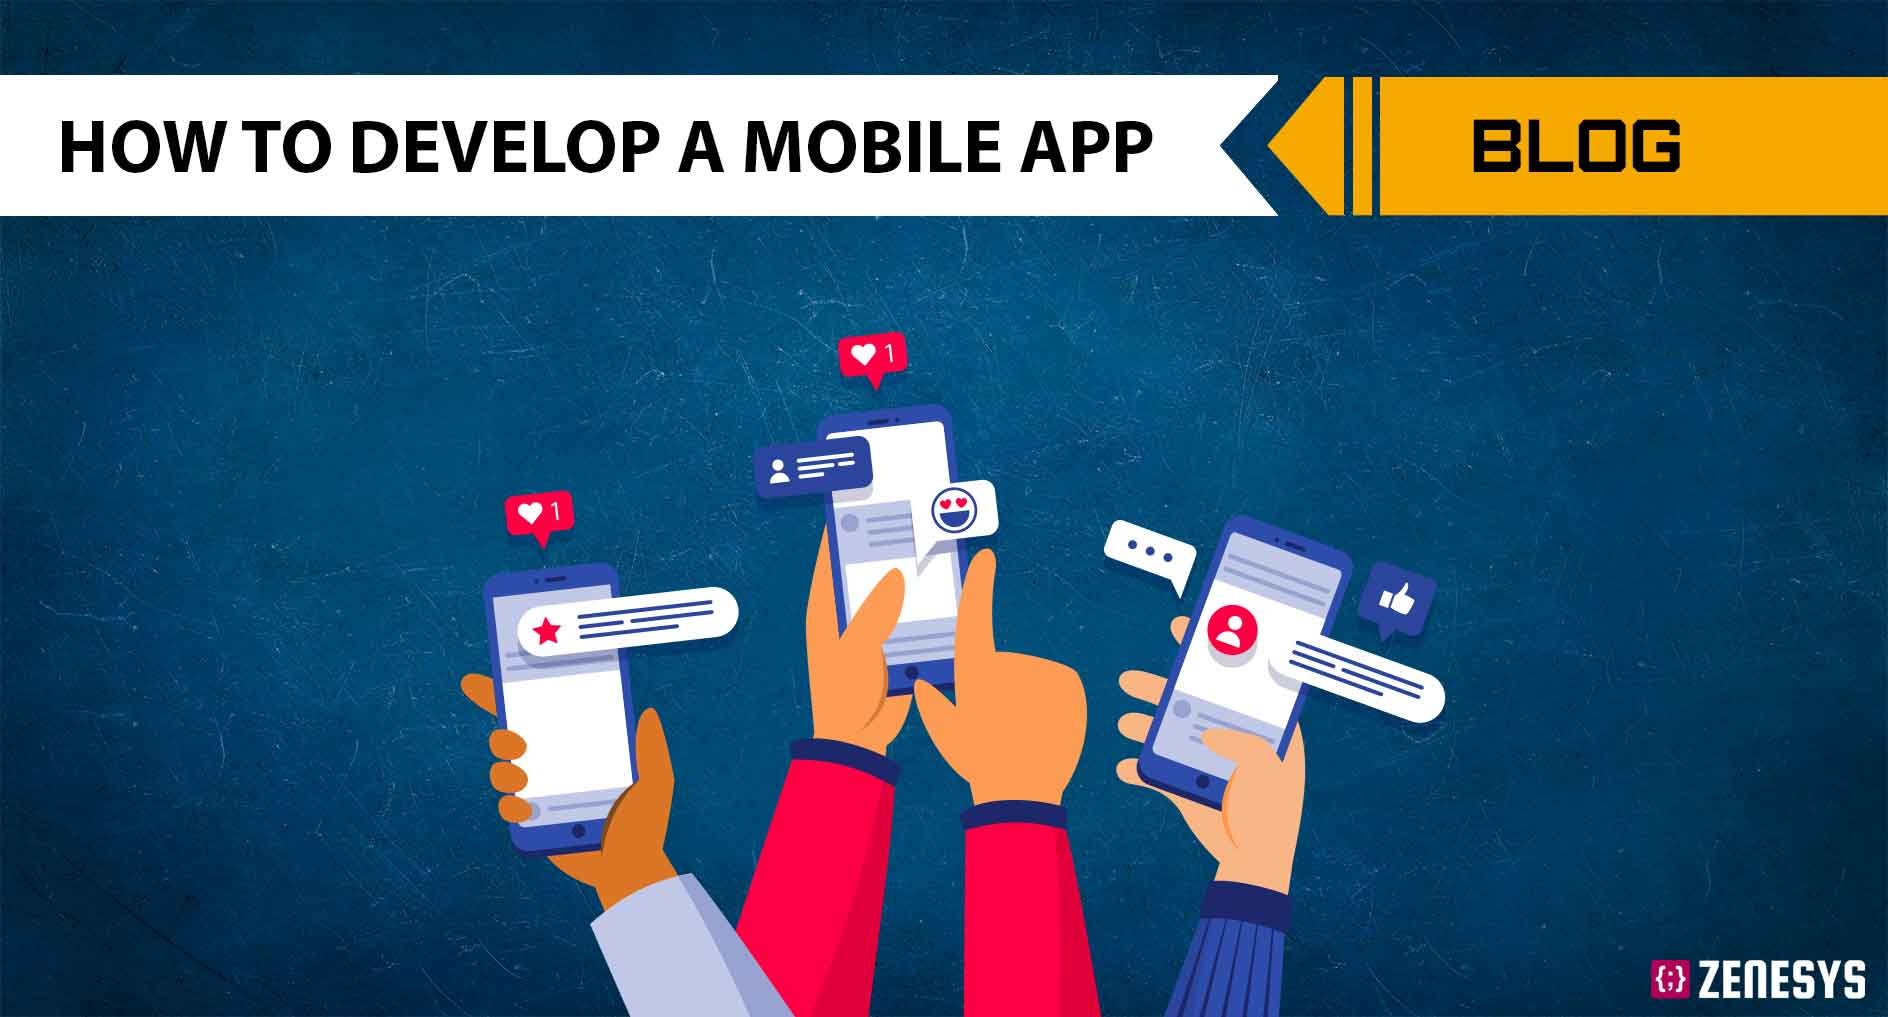 A Complete Guide on how to develop a Mobile App